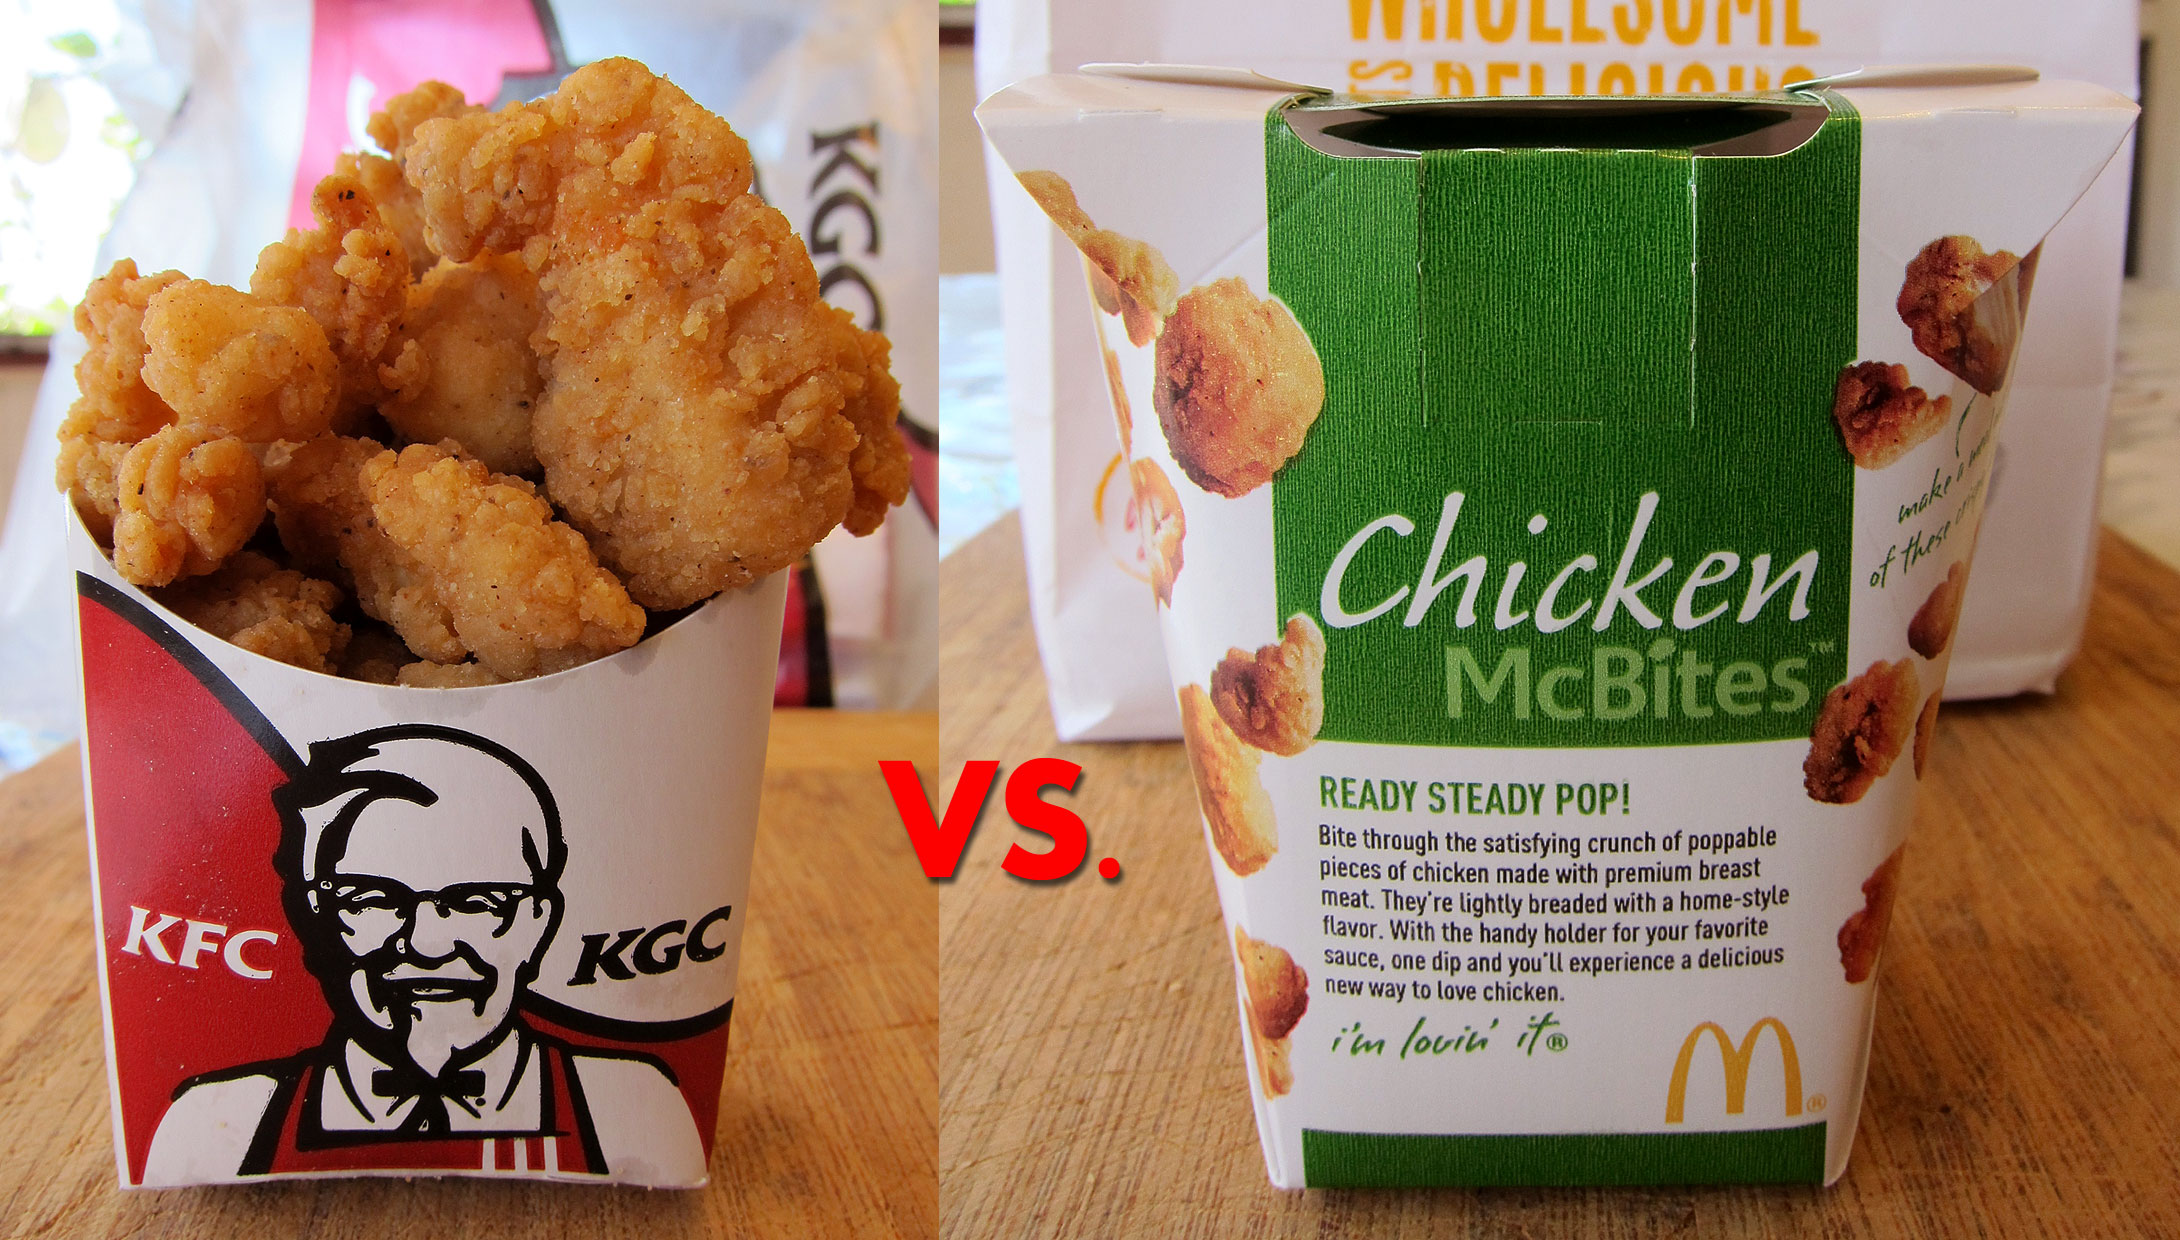 kfc vs mcdonalds Mcdonald's vs kfc range: mcdonald's attention is fundamentally on hamburgers, cheese burgers and broiled chicken and it have a wide range of burgers kfc has a more extensive scope of approaches to get ready chicken kfc does wraps, servings of mixed greens and pieces (ala popcorn chicken) or now and again even pies and kebabs.